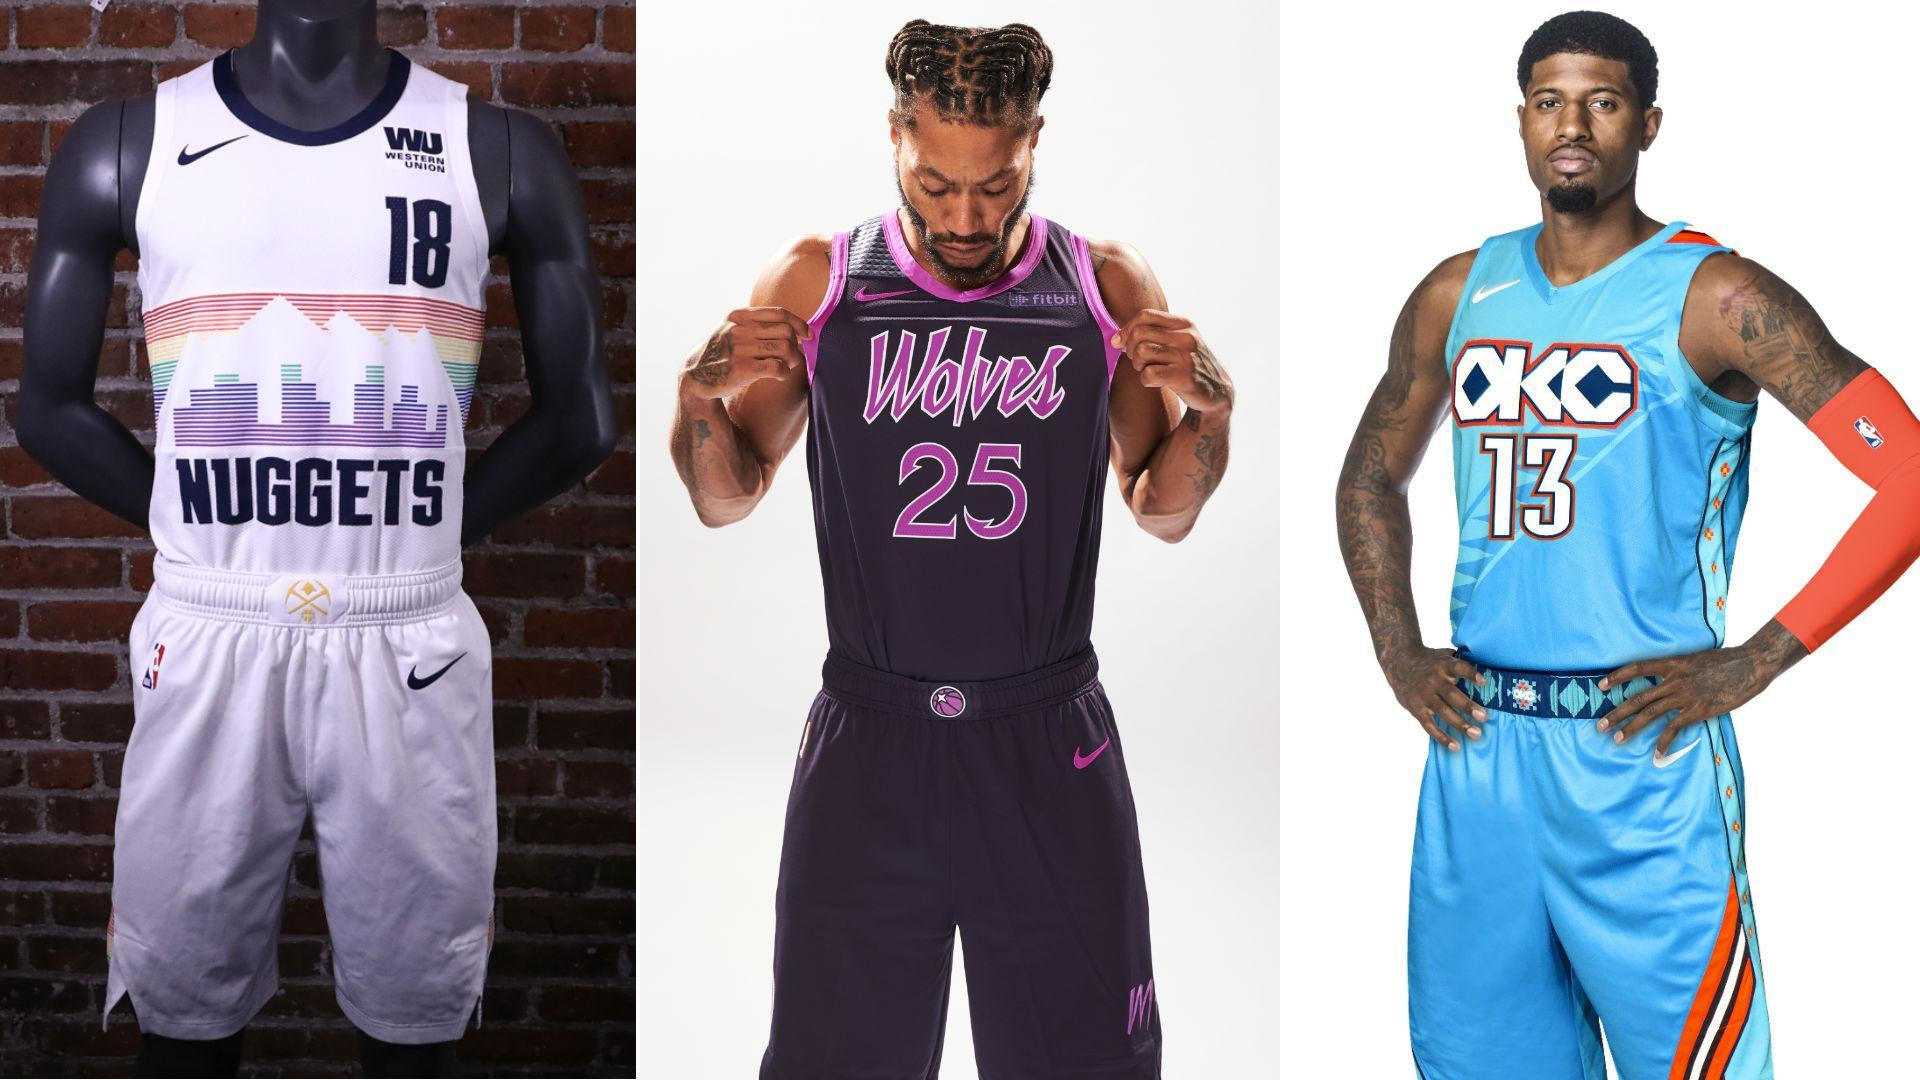 ba2701415fb City Edition uniforms: Teams league-wide unveil new looks for 2018-19 | NBA .com